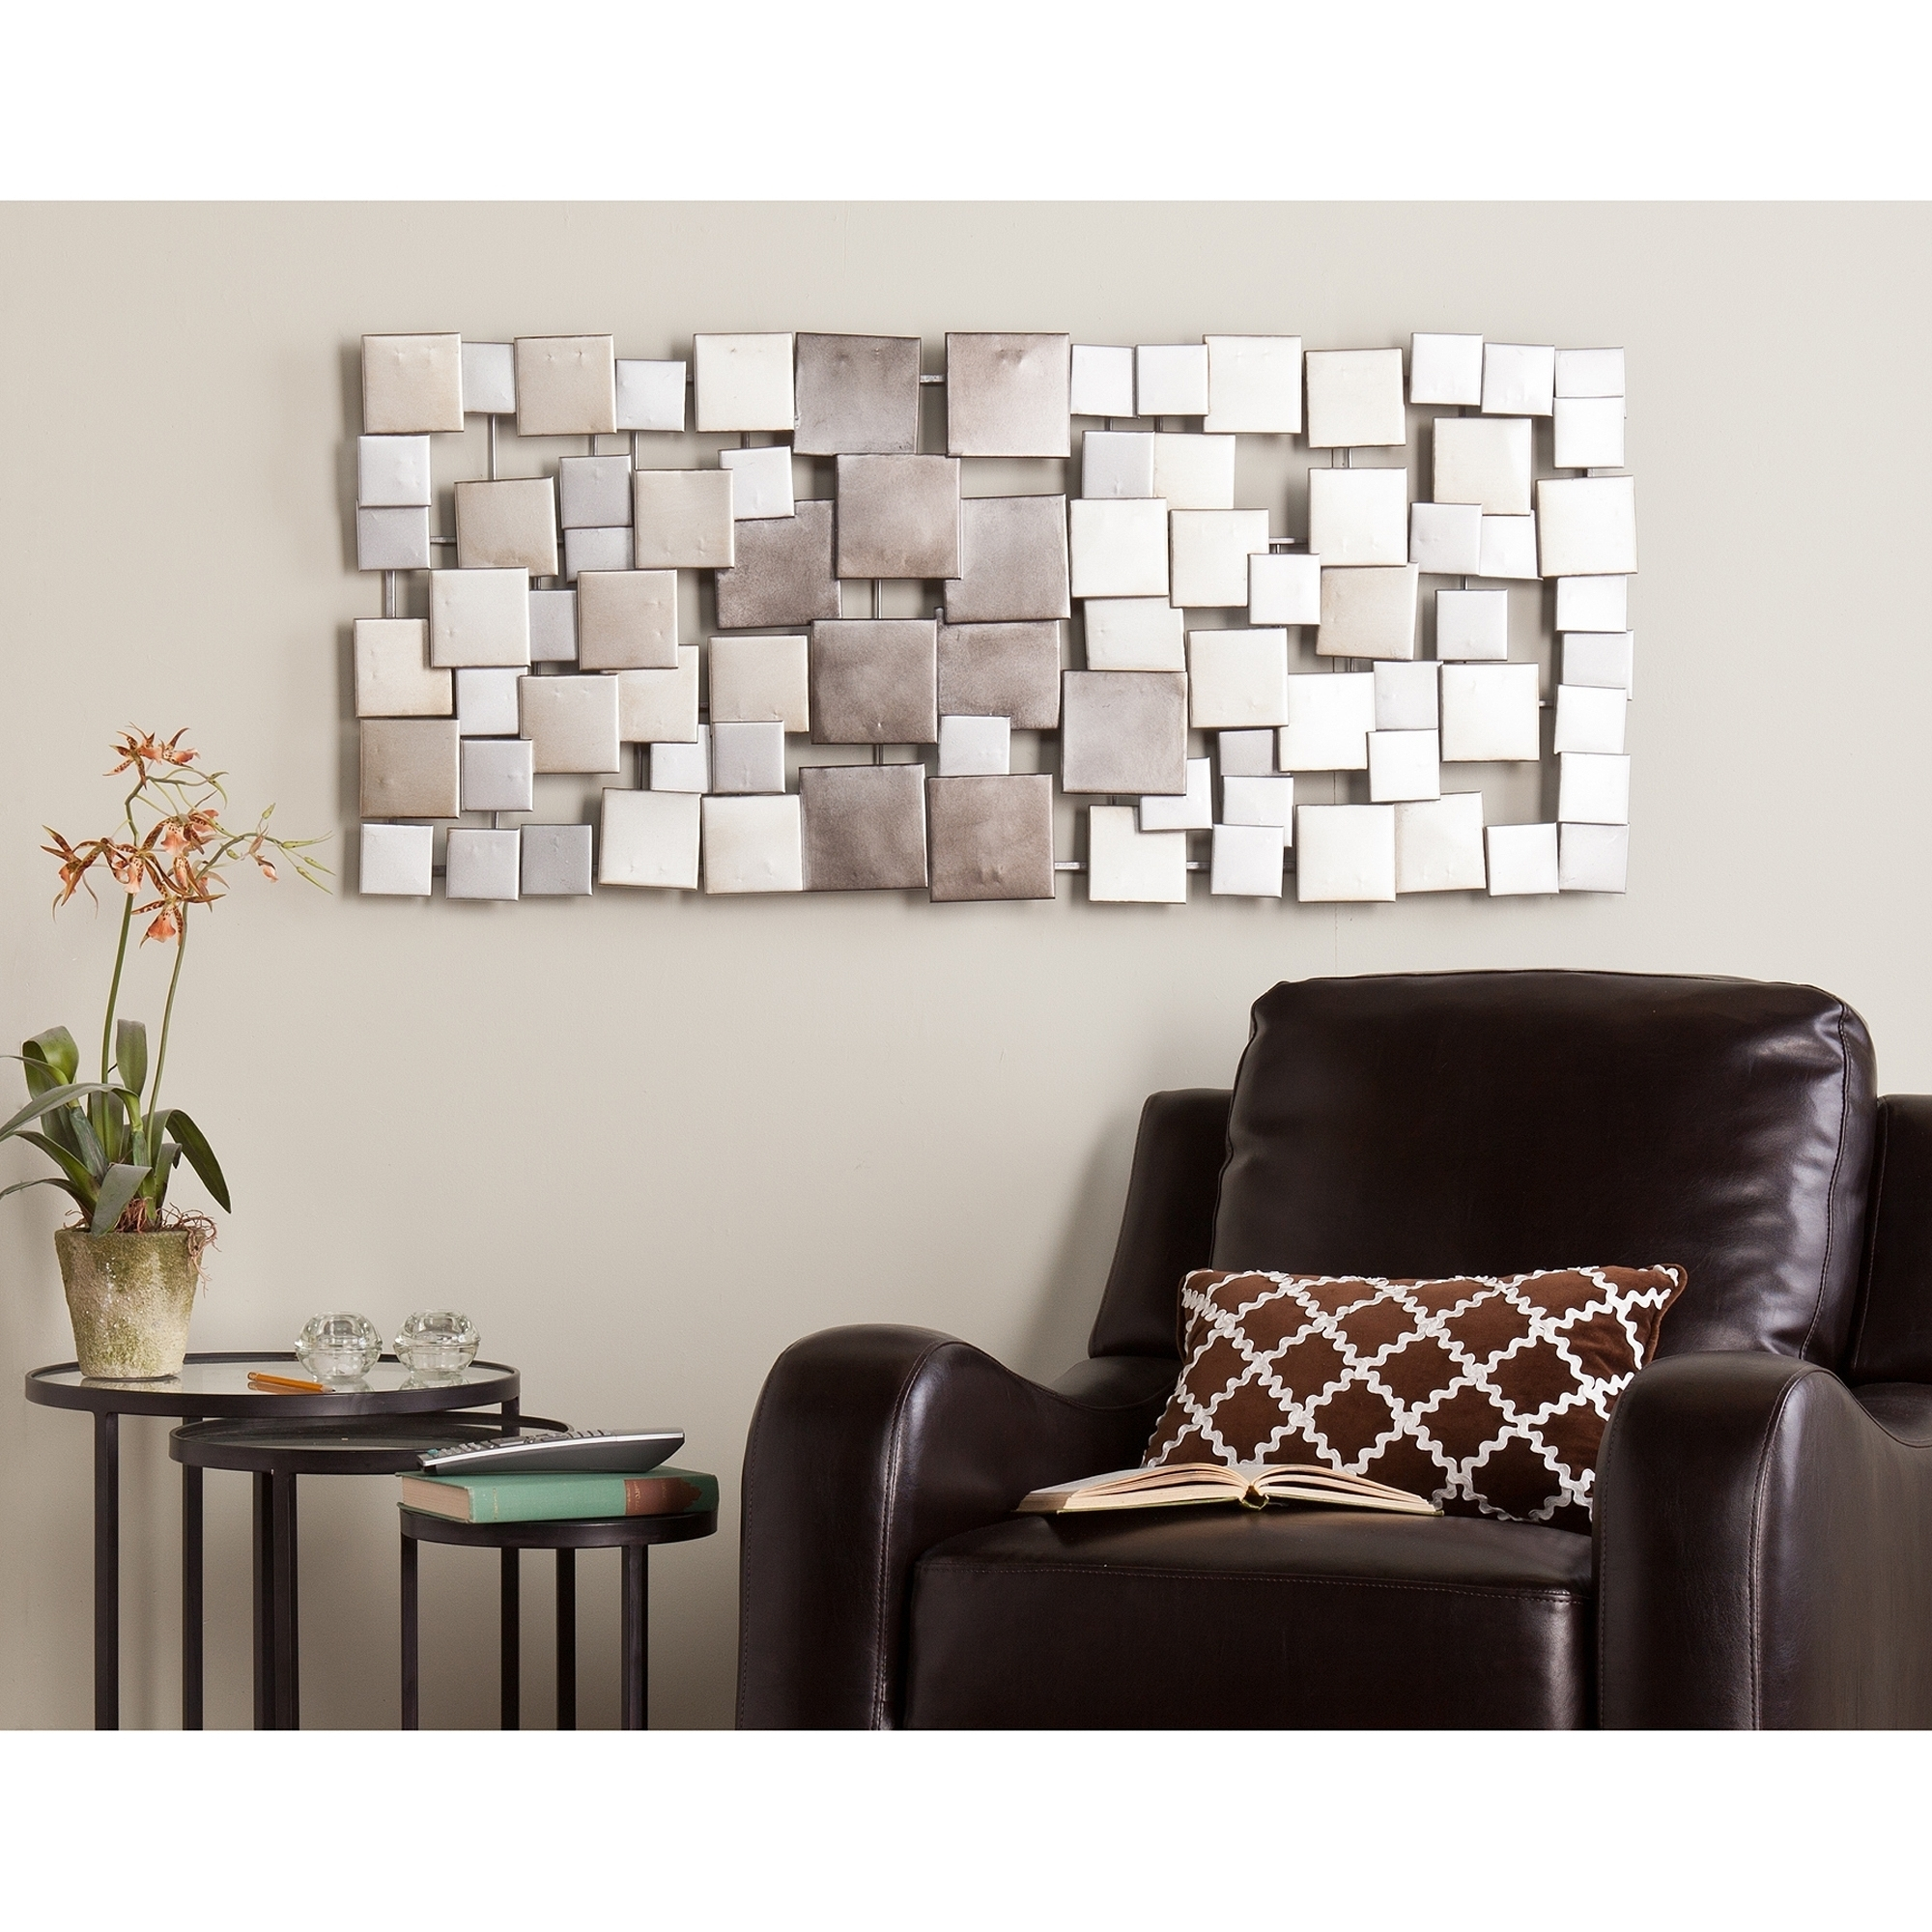 The Best Canvas Wall Art At Walmart With 2018 Canvas Wall Art At Walmart (View 15 of 15)